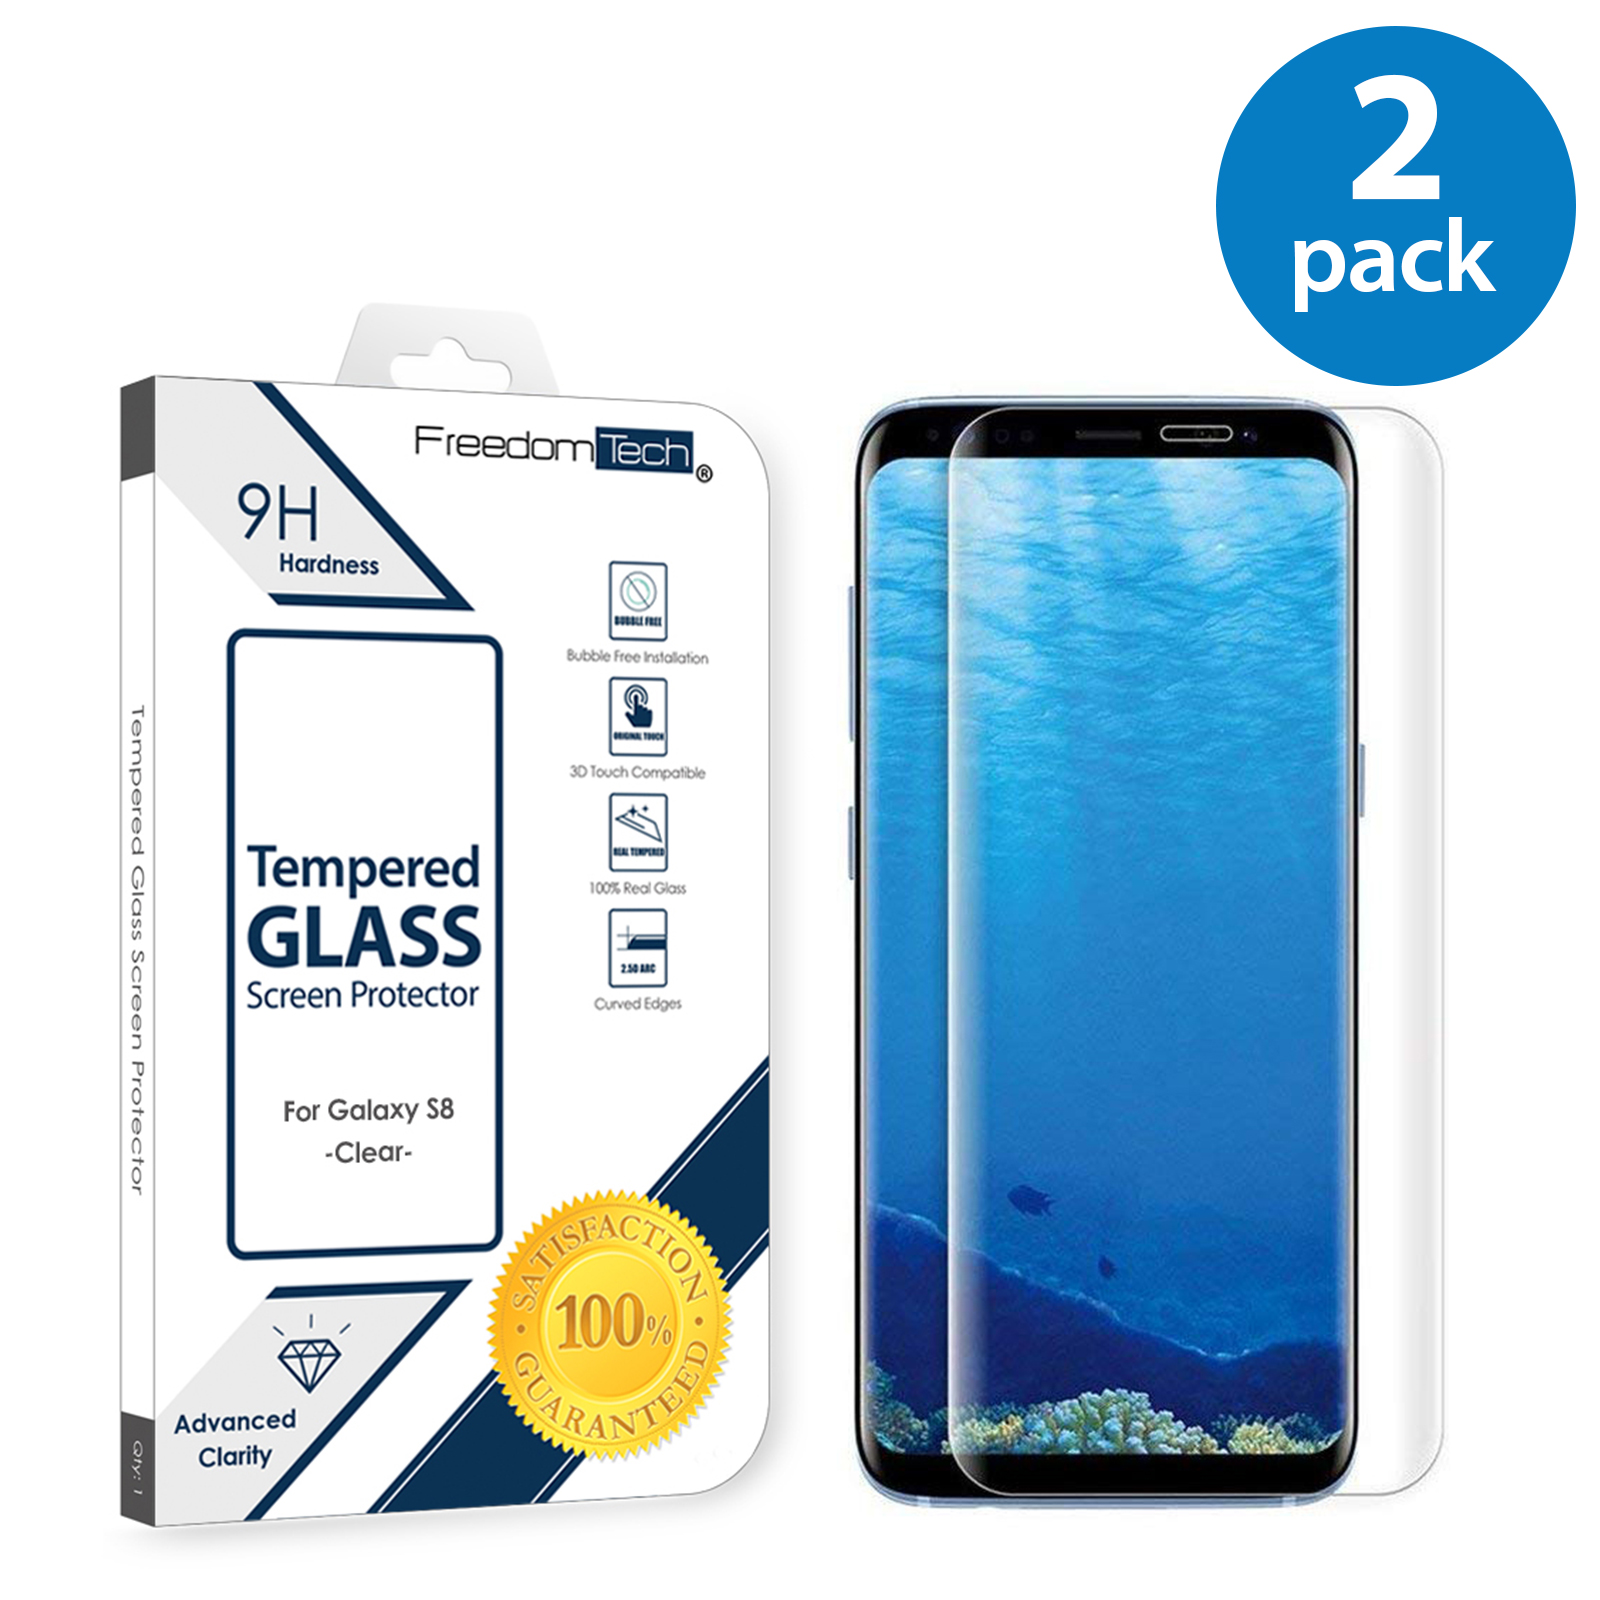 2x Samsung Galaxy S8 Screen Protector Glass Film Full Cover 3D Curved Case Friendly Screen Protector Tempered Glass for Samsung Galaxy S8 Clear